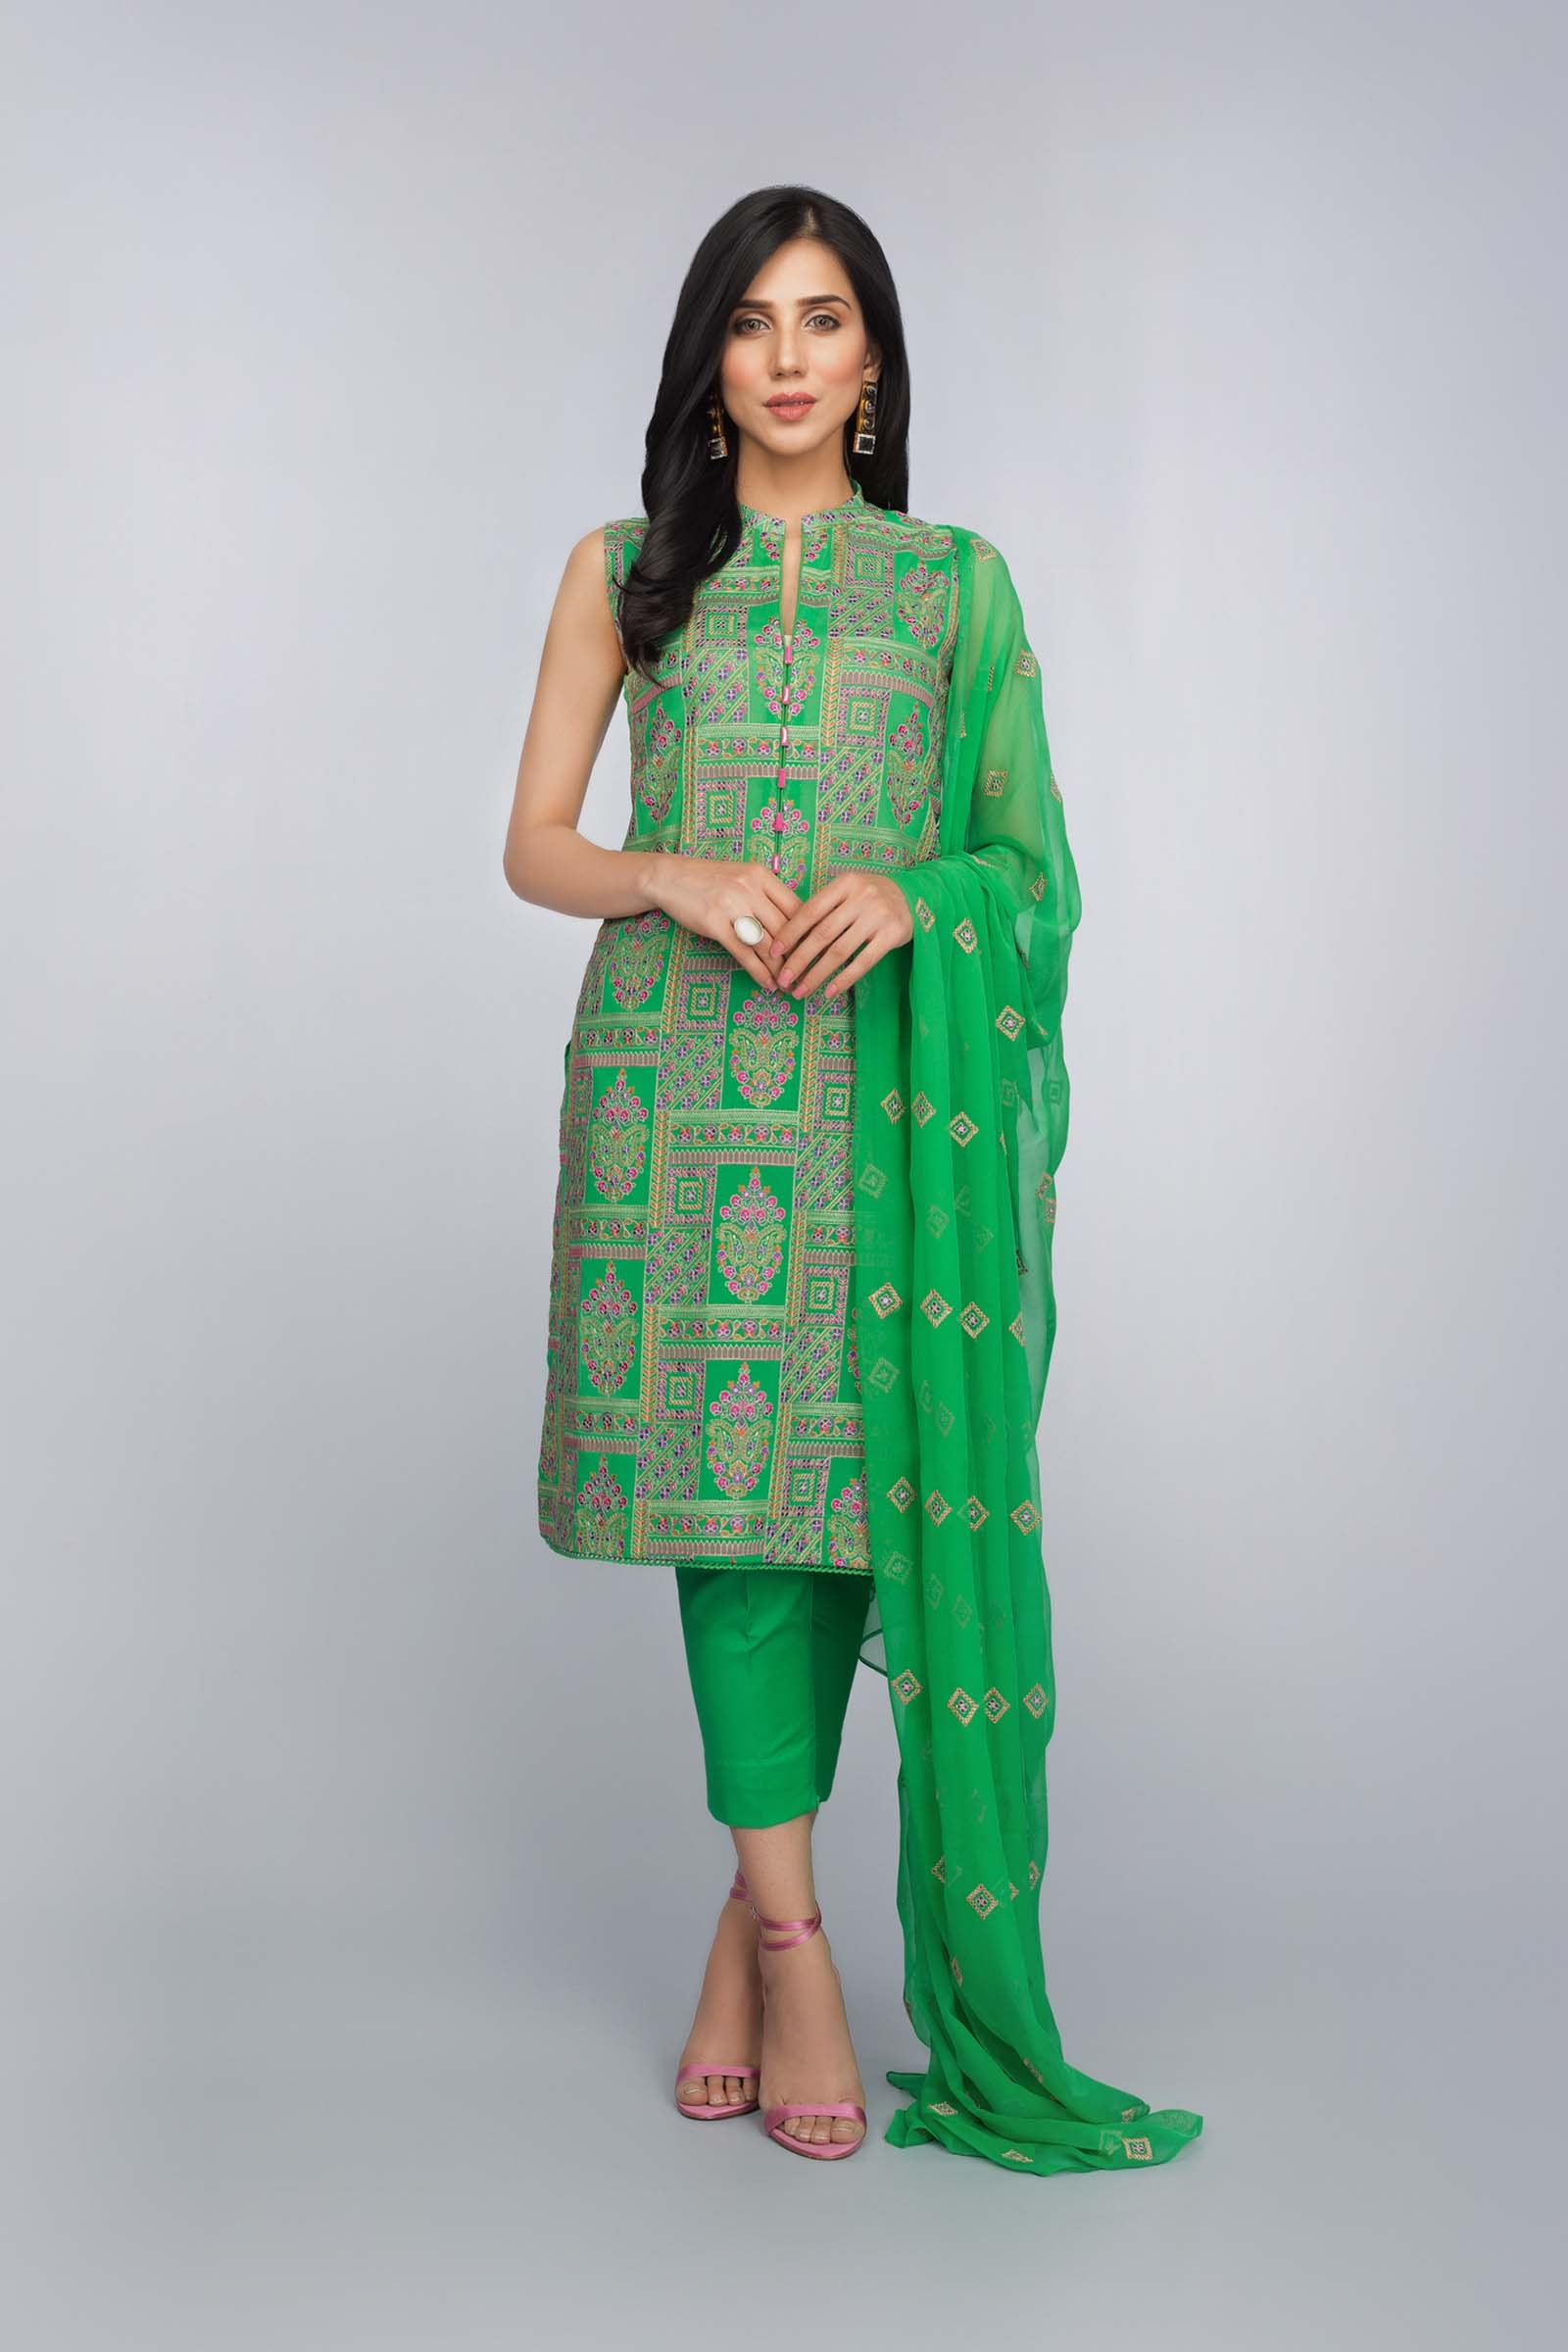 359123f2496 Buy Online Refreshing Green Unstitched Pakistani Lawn Suit by Bareeze  Summer Collection